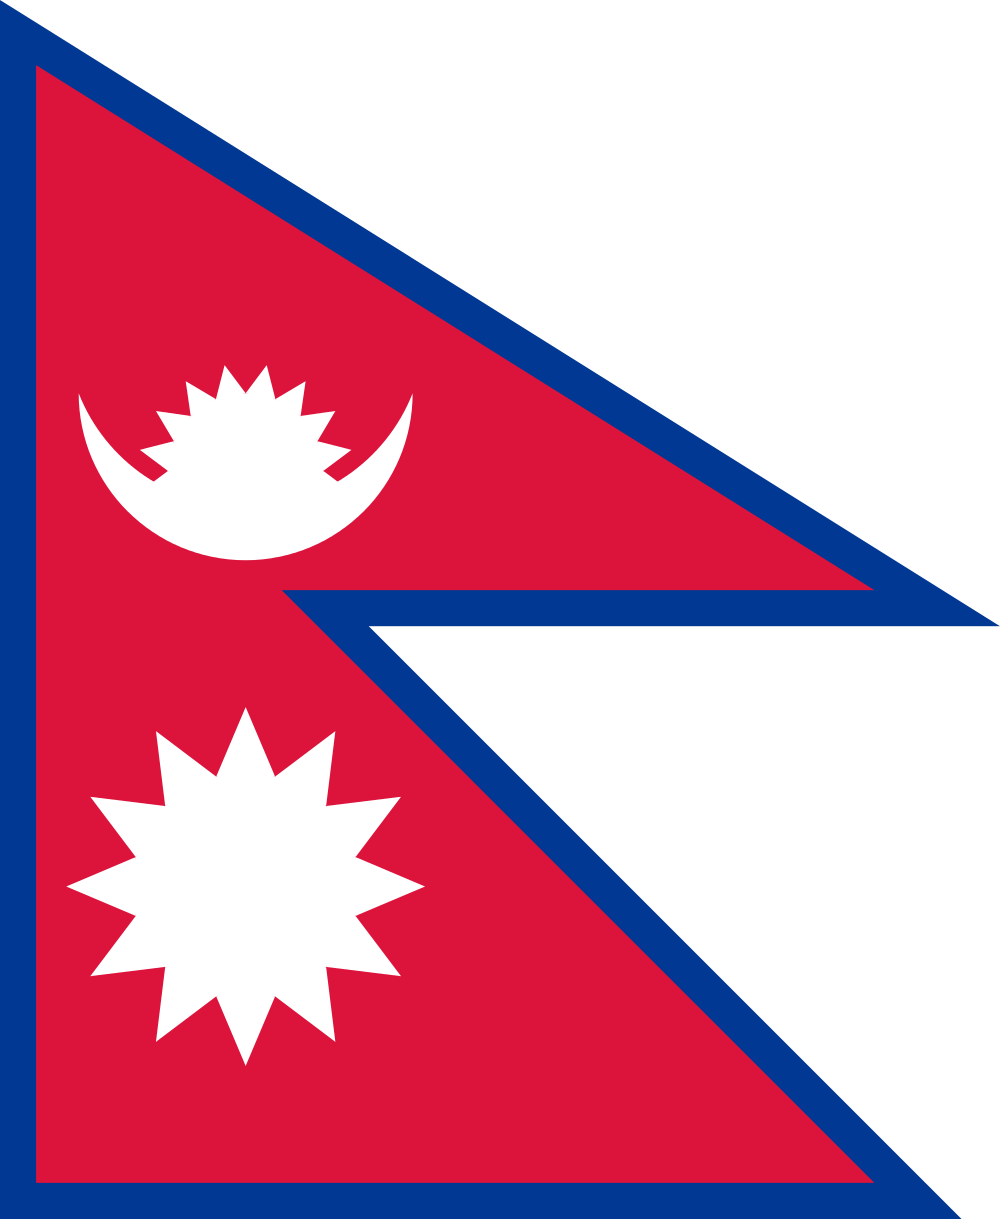 nepal flag Google Search | Pelzom | Pinterest | Flags and Country